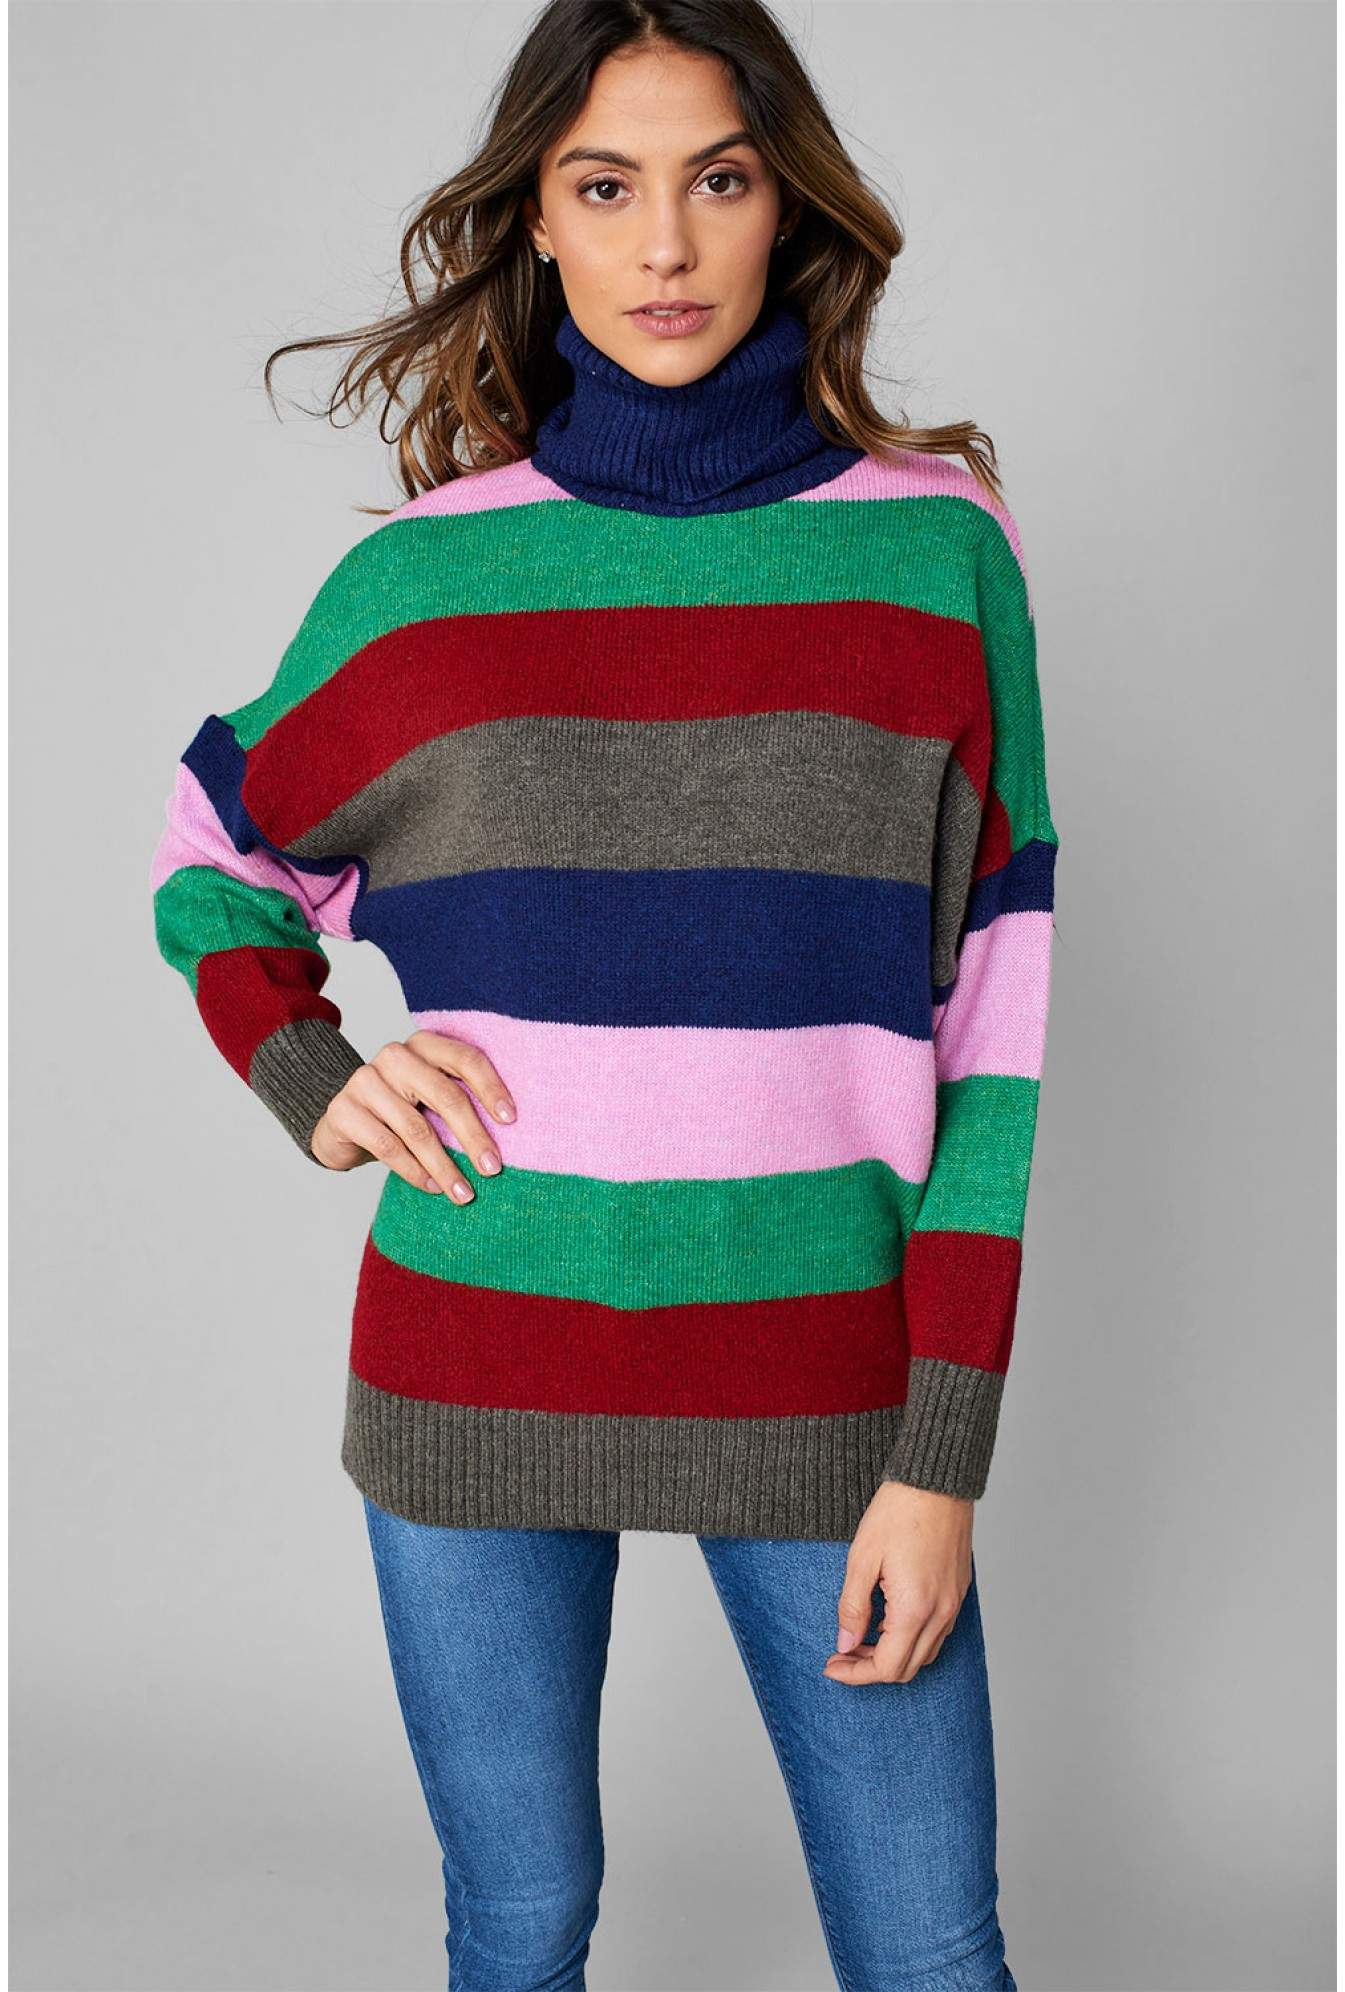 af70c205c4ce2 More Views. Monica Roll Neck Knit Jumper in Rainbow Stripe. Only